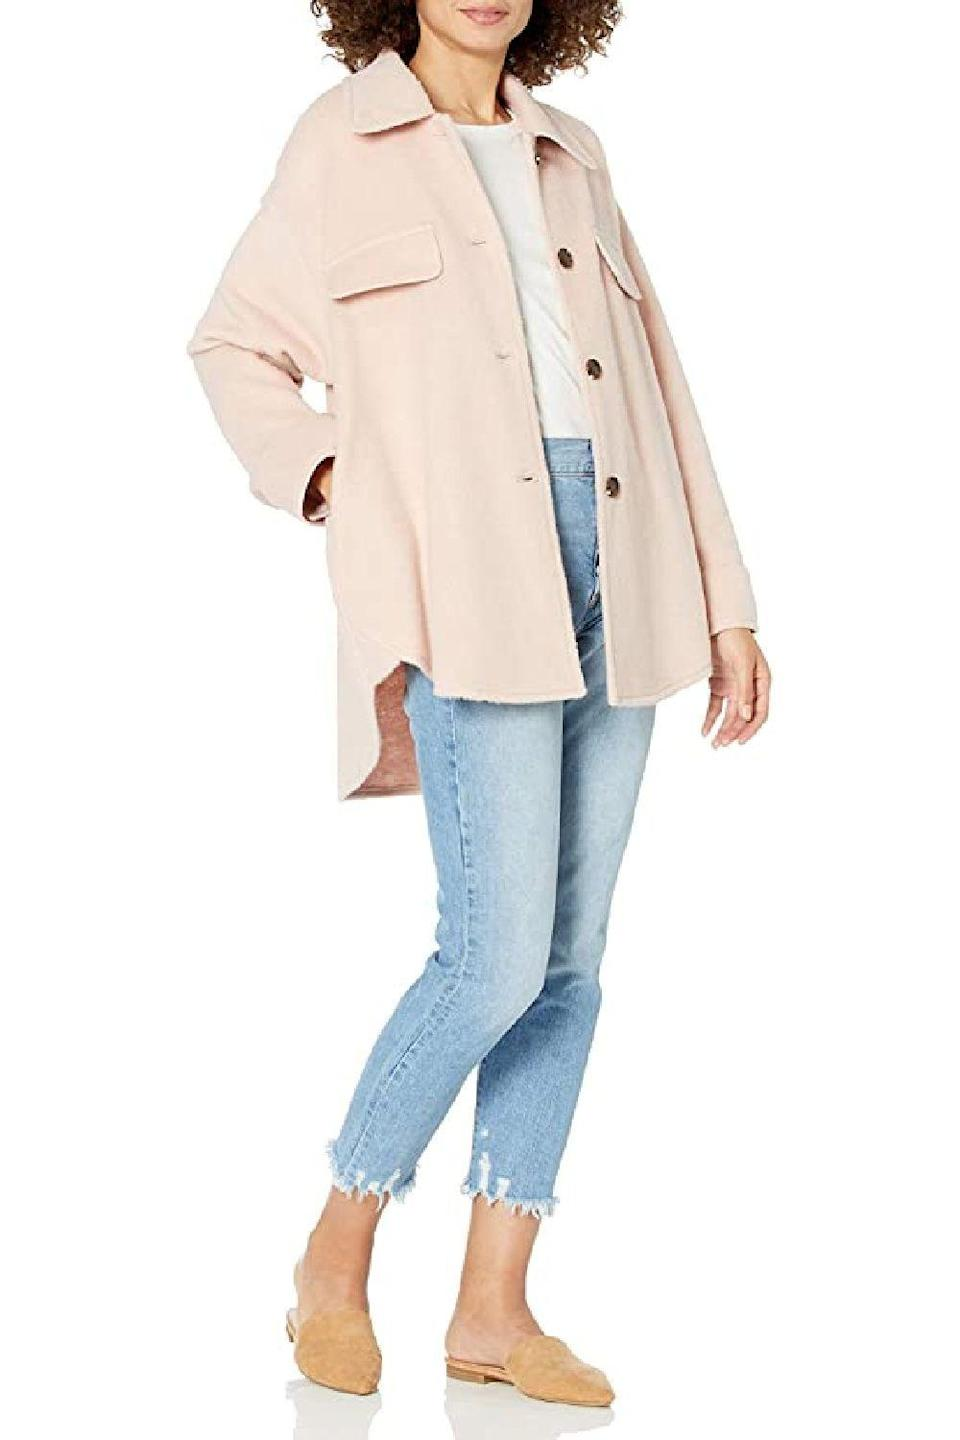 "<p><strong>The Drop</strong></p><p>amazon.com</p><p><strong>$69.90</strong></p><p><a href=""https://www.amazon.com/Drop-Womens-spreadfashion-Oversized-Jacket/dp/B08LJ6LZTL/?tag=syn-yahoo-20&ascsubtag=%5Bartid%7C10049.g.20108306%5Bsrc%7Cyahoo-us"" rel=""nofollow noopener"" target=""_blank"" data-ylk=""slk:Shop Now"" class=""link rapid-noclick-resp"">Shop Now</a></p><p>Part shirt, part jacket, your mom will love this pastel layering piece for brisk spring mornings and chilly summer nights.</p>"